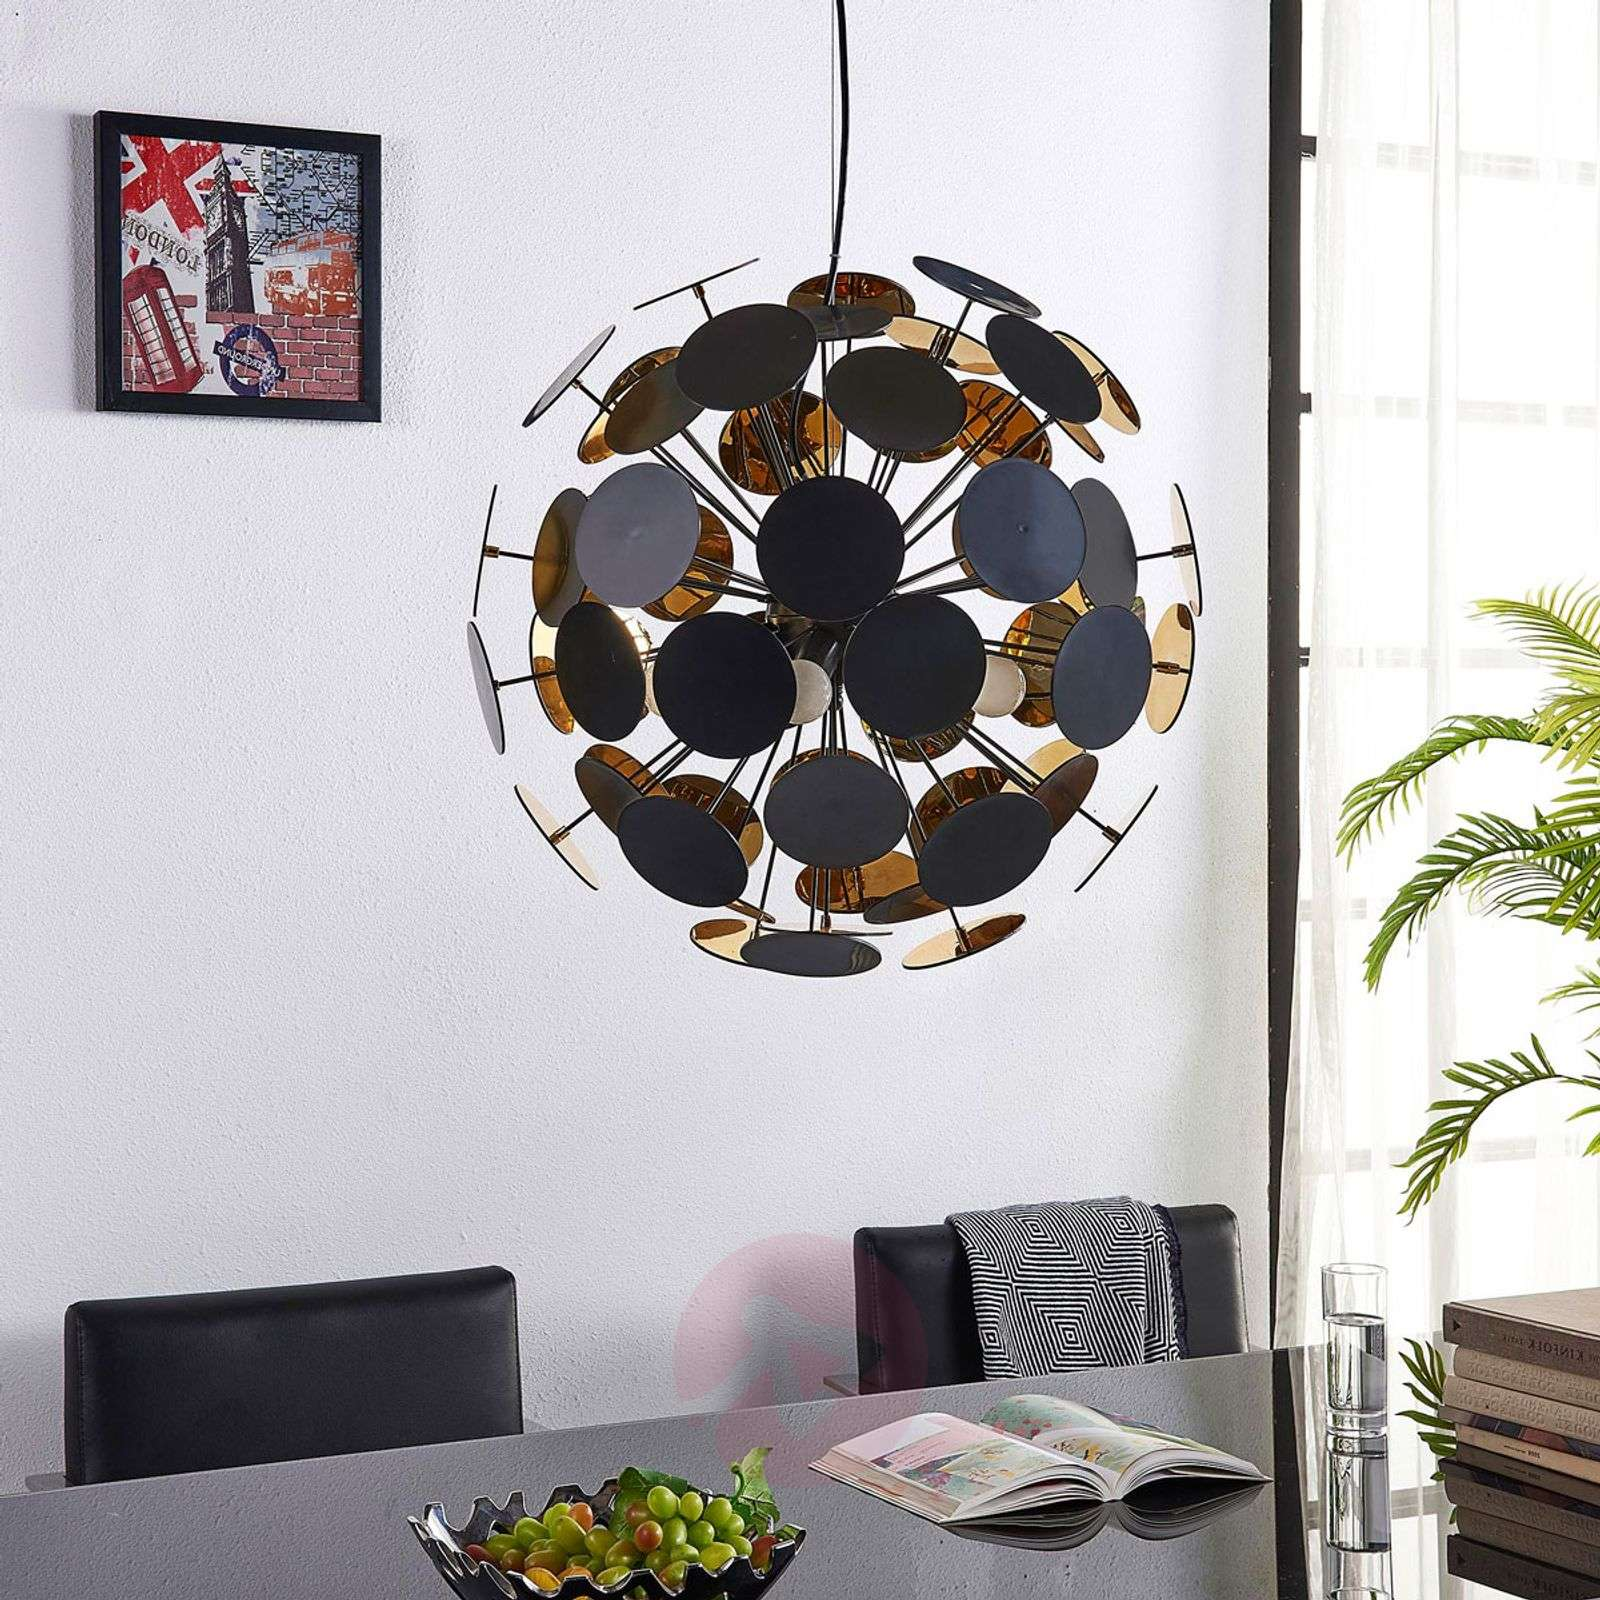 Hanging lamp Kinan with panes in black and gold-9621169-02